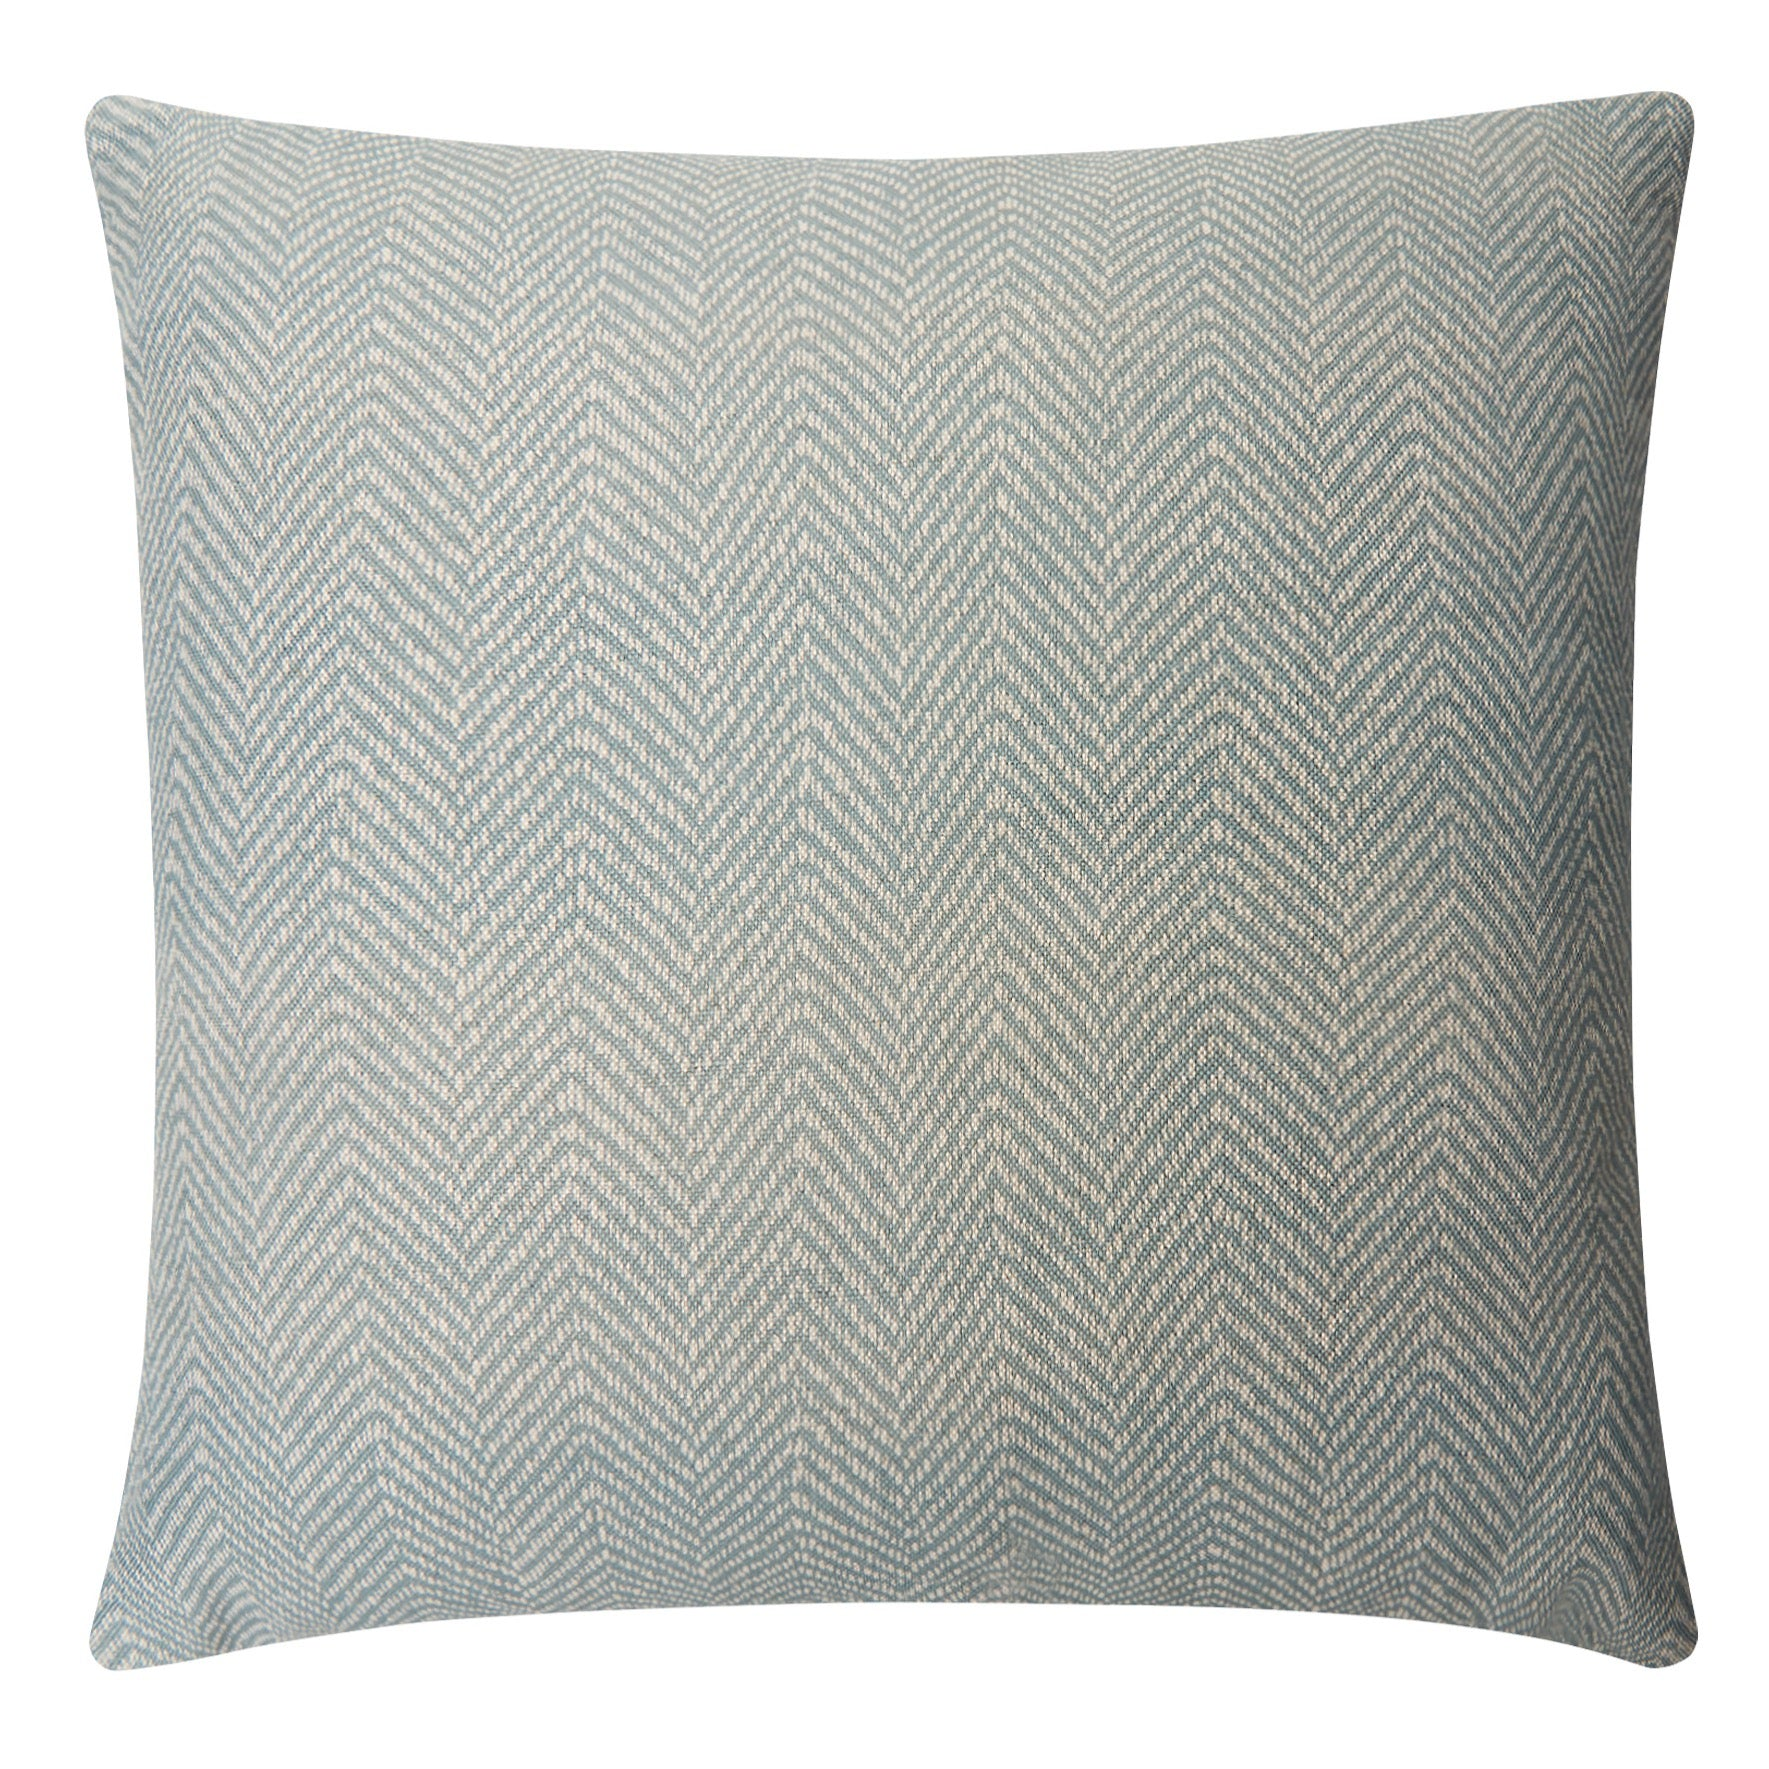 SEA GREY 45cm Herringbone Printed Linen Cushion